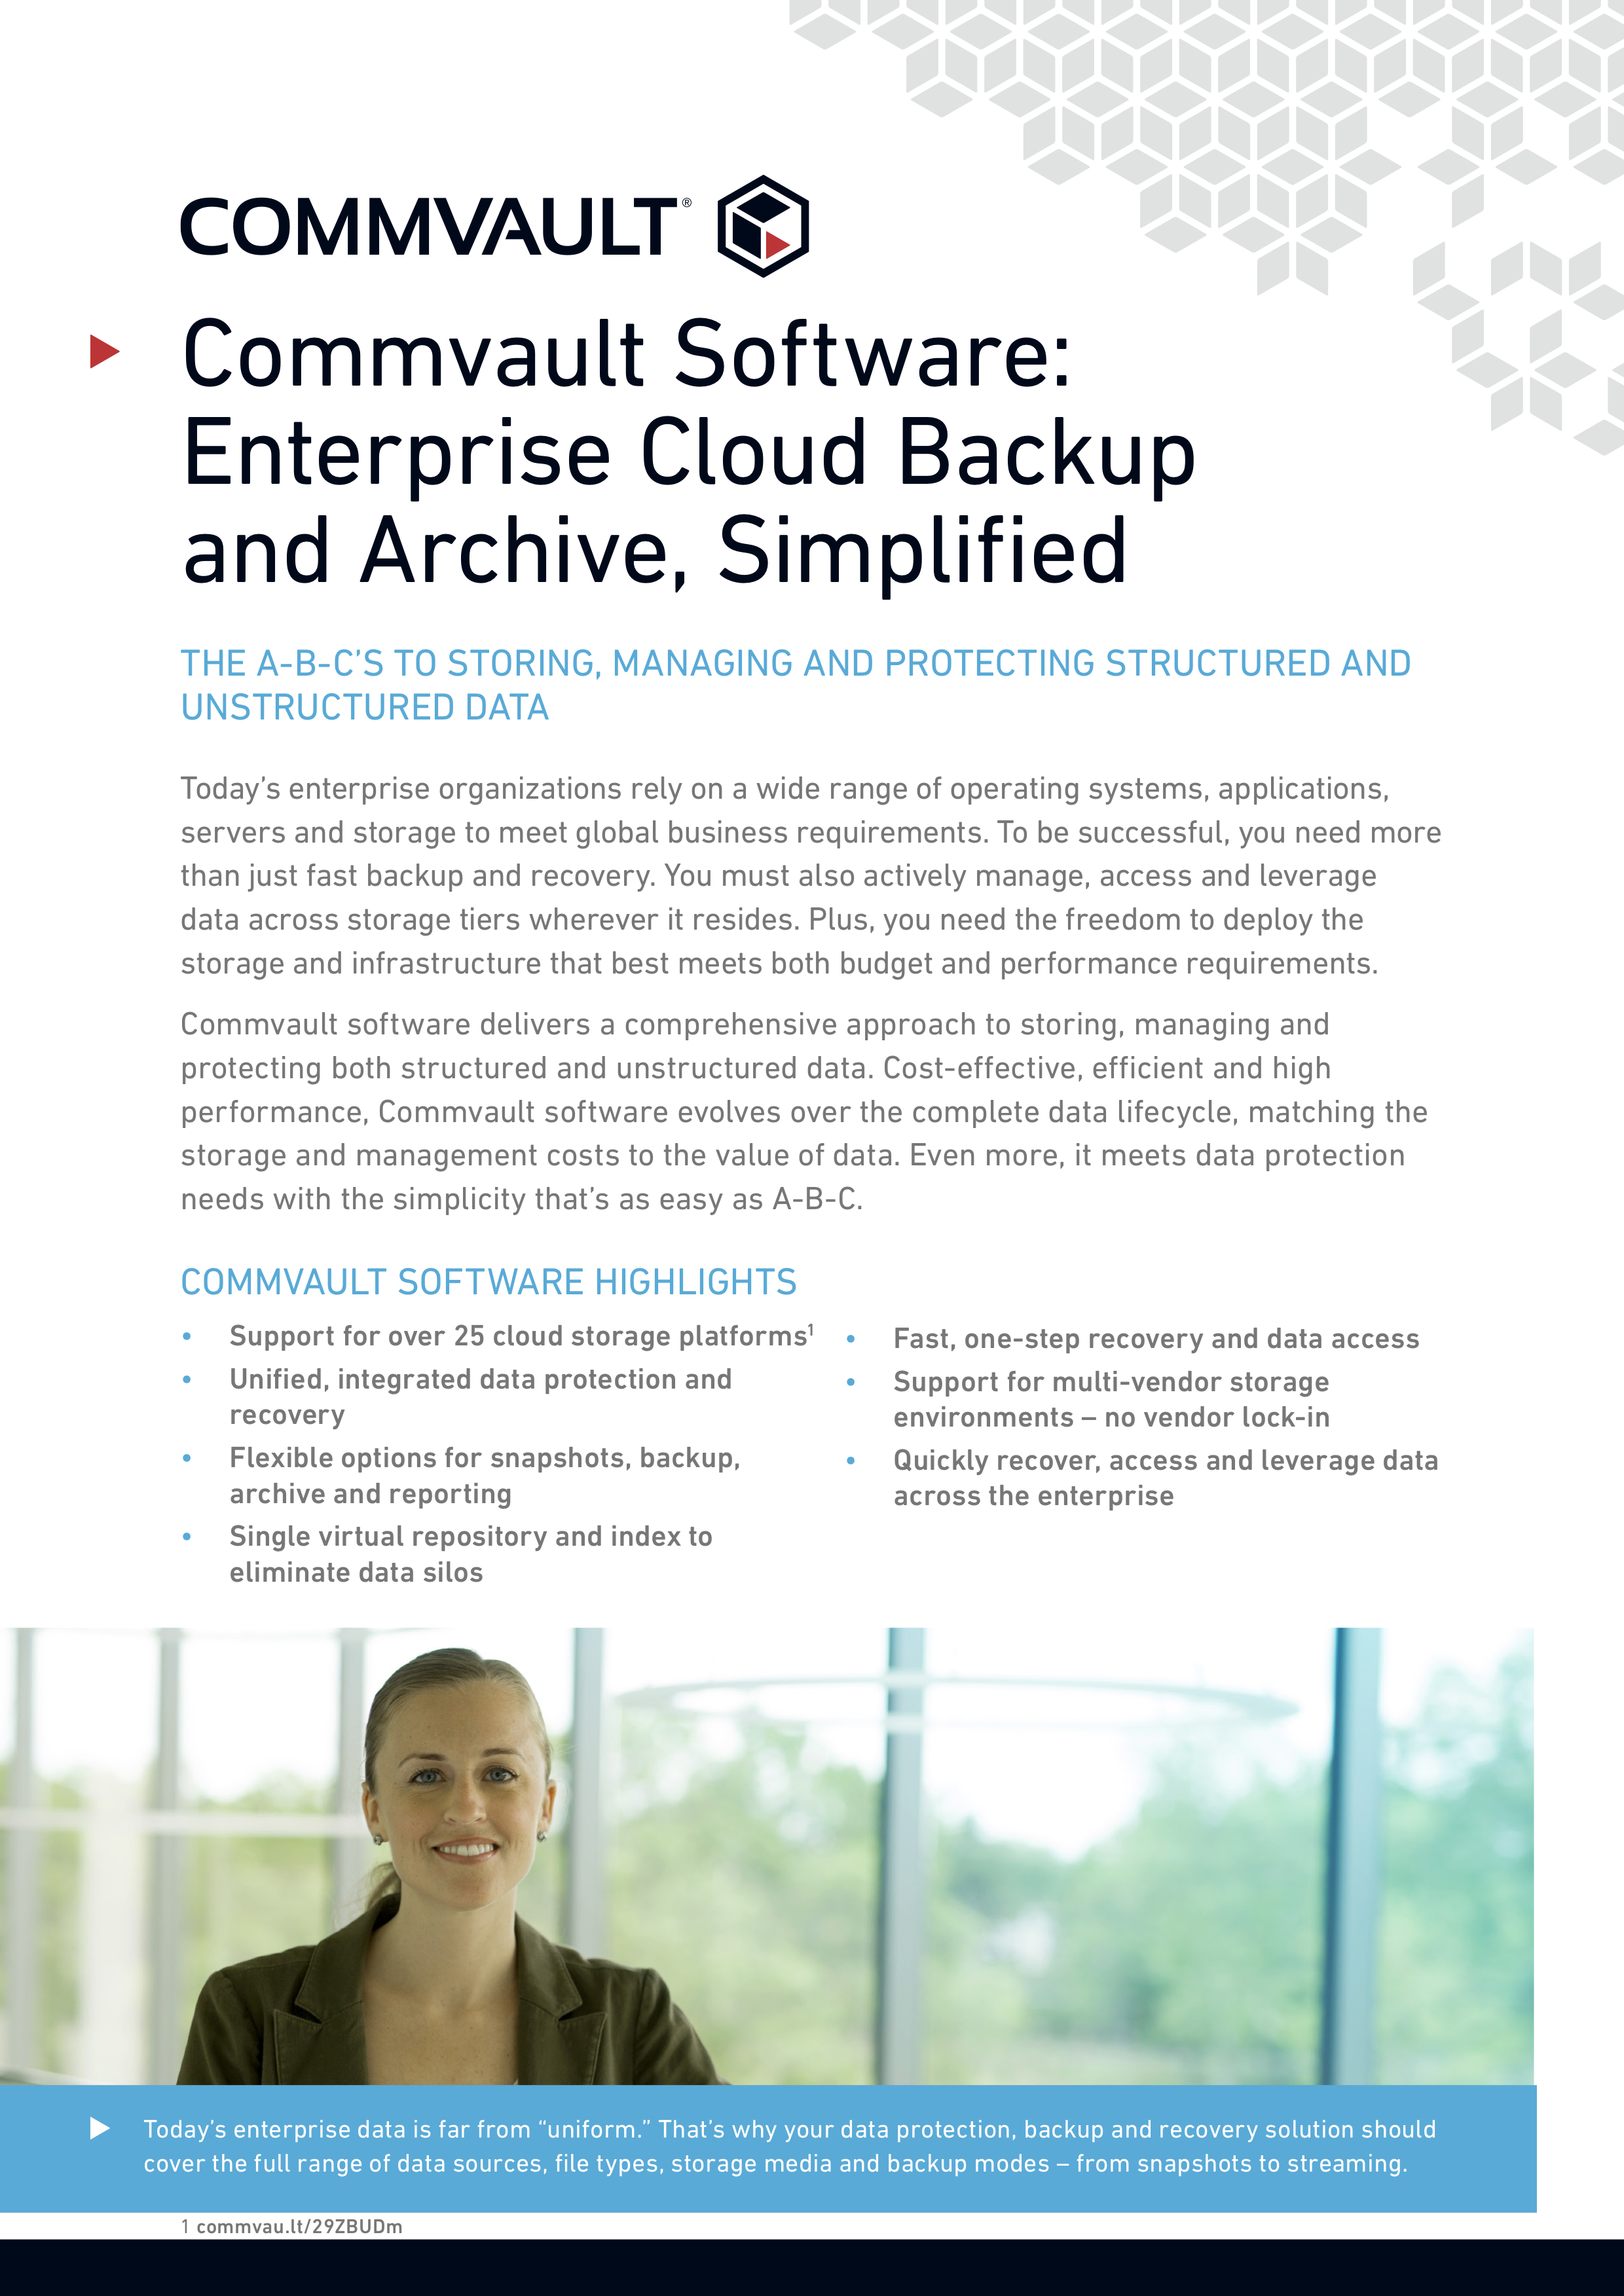 Commvault software backup archive and cloud simplified